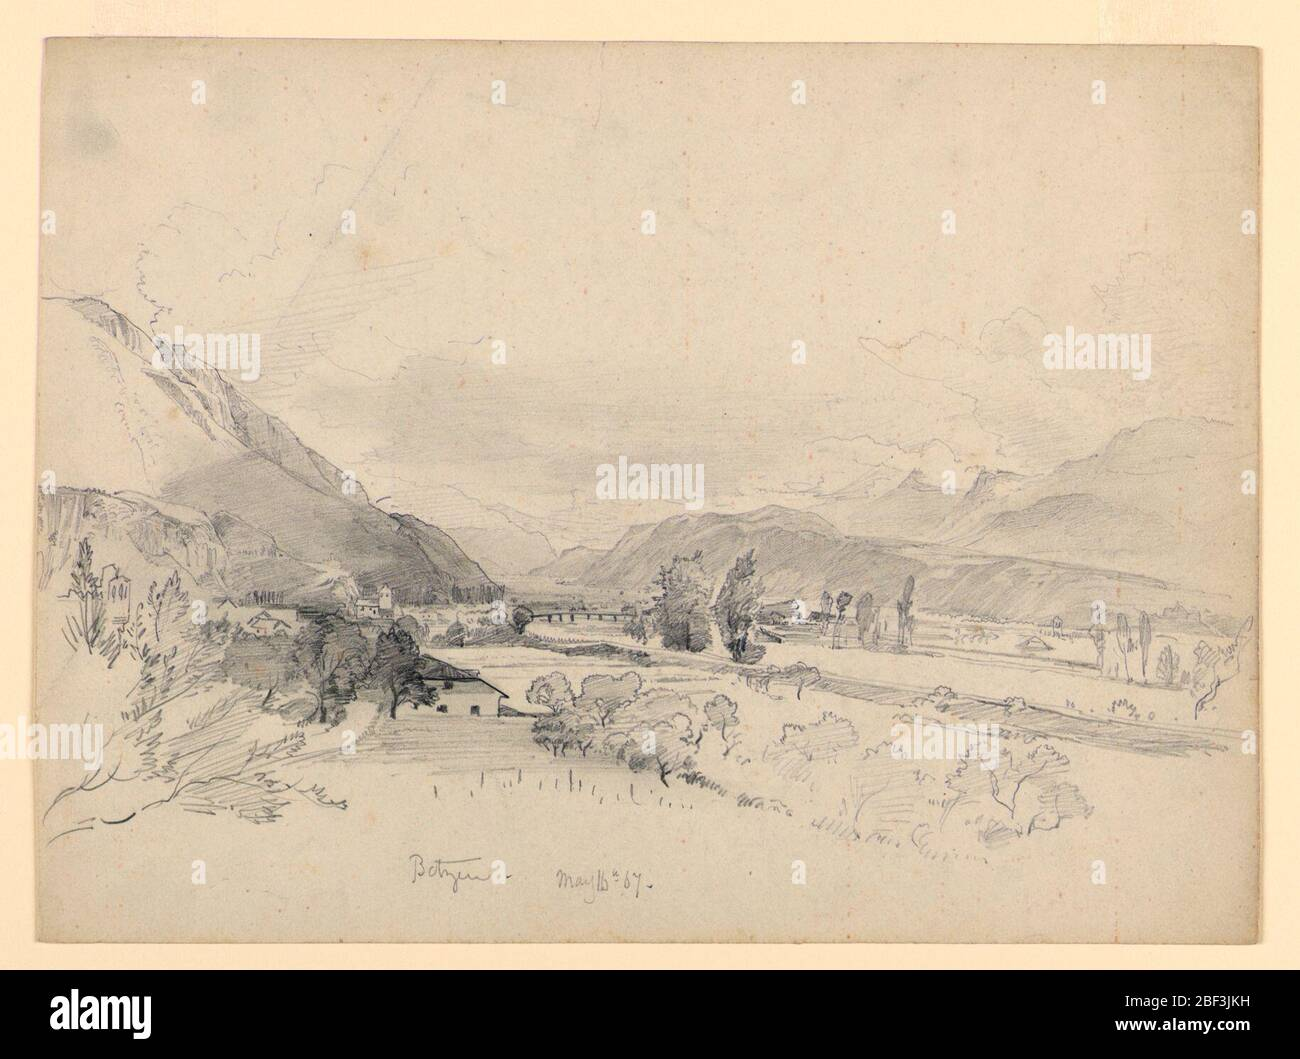 Landscape Bautzen Germany Sketch Of A River In A Valley With A Bridge In The Center And Mountains In The Background Stock Photo Alamy